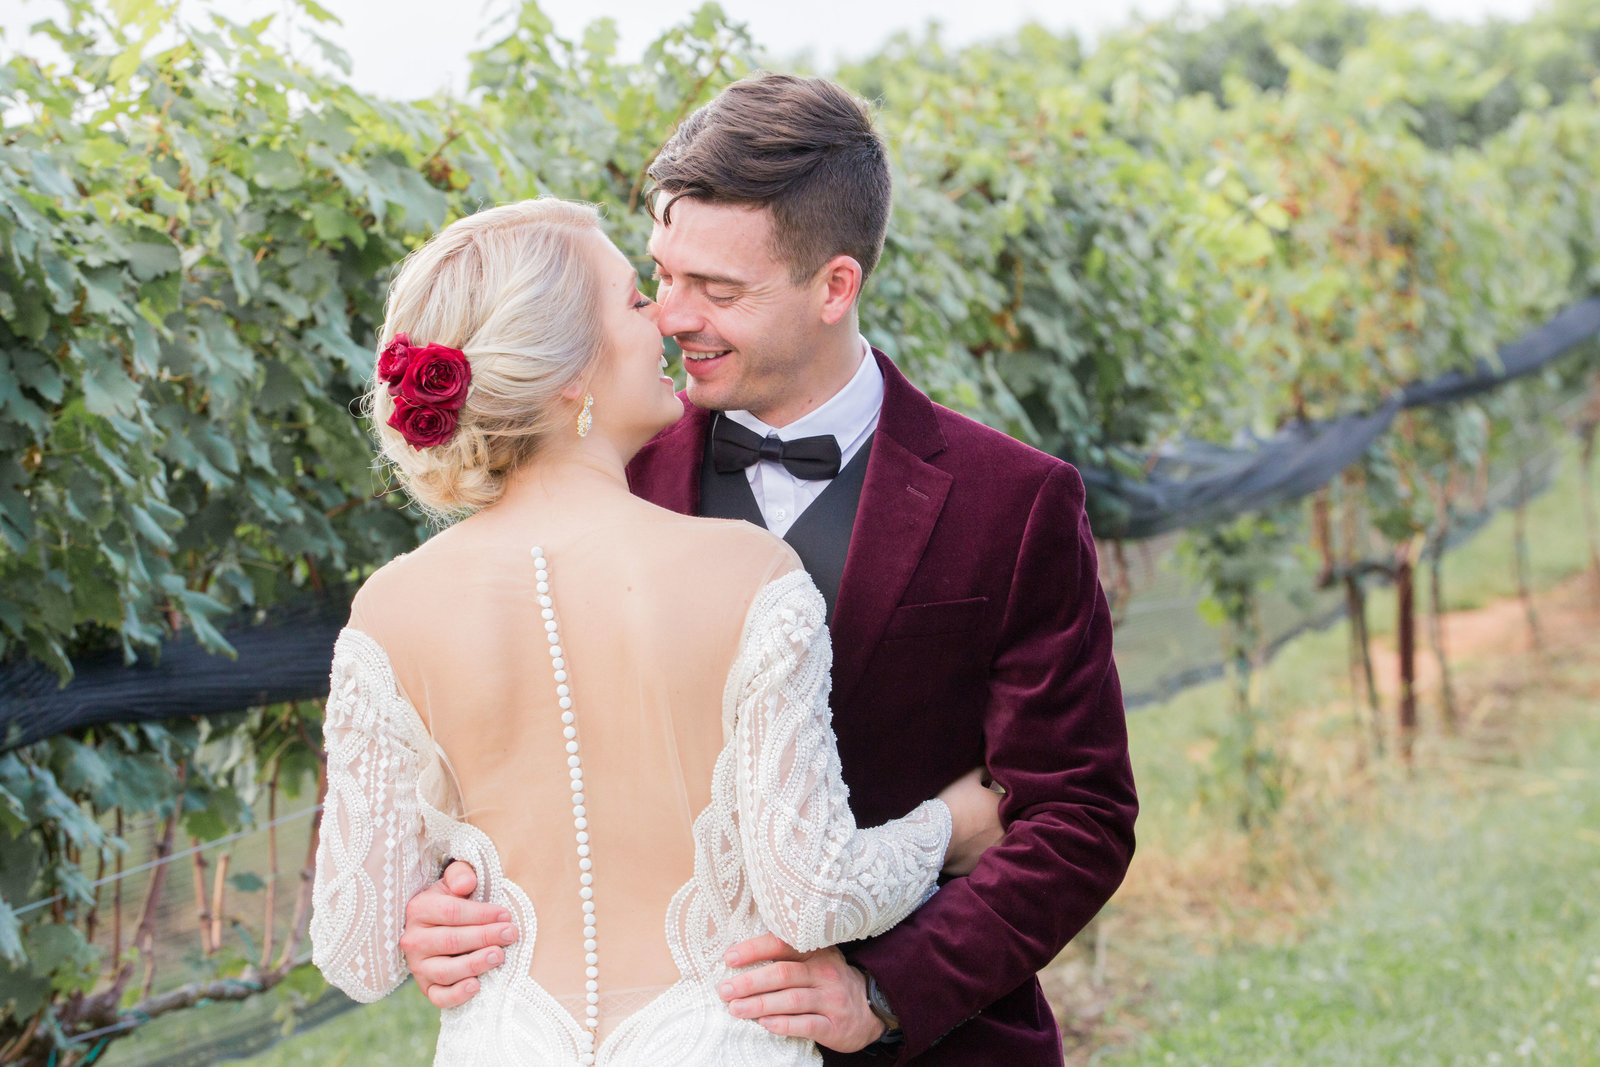 Nashville Wedding Photography | Wedding Vineyard Glam